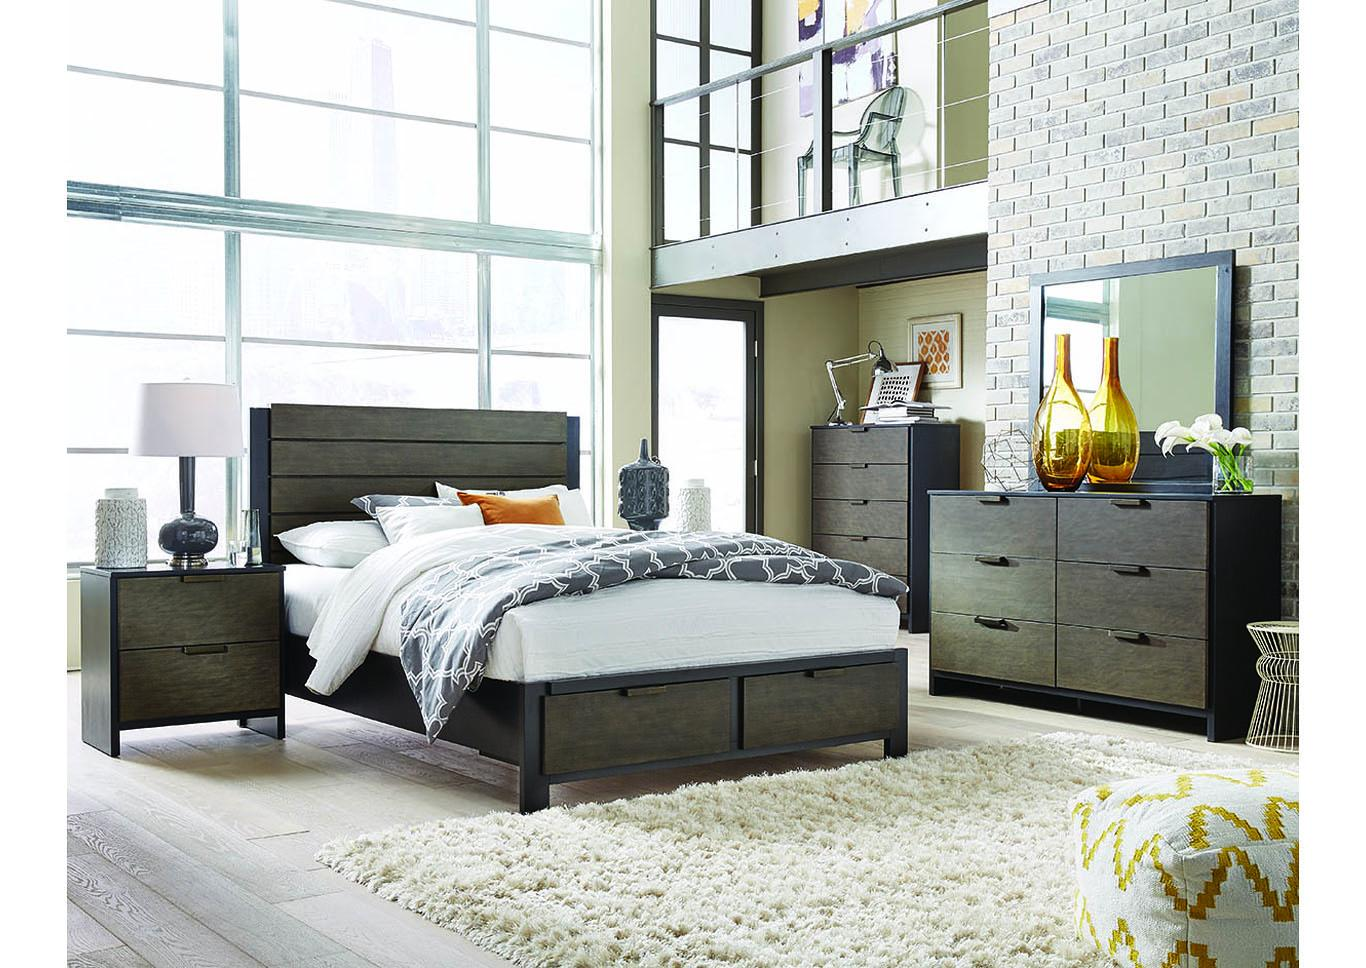 Paxton Storage Platform Bed Eastern King,Instore